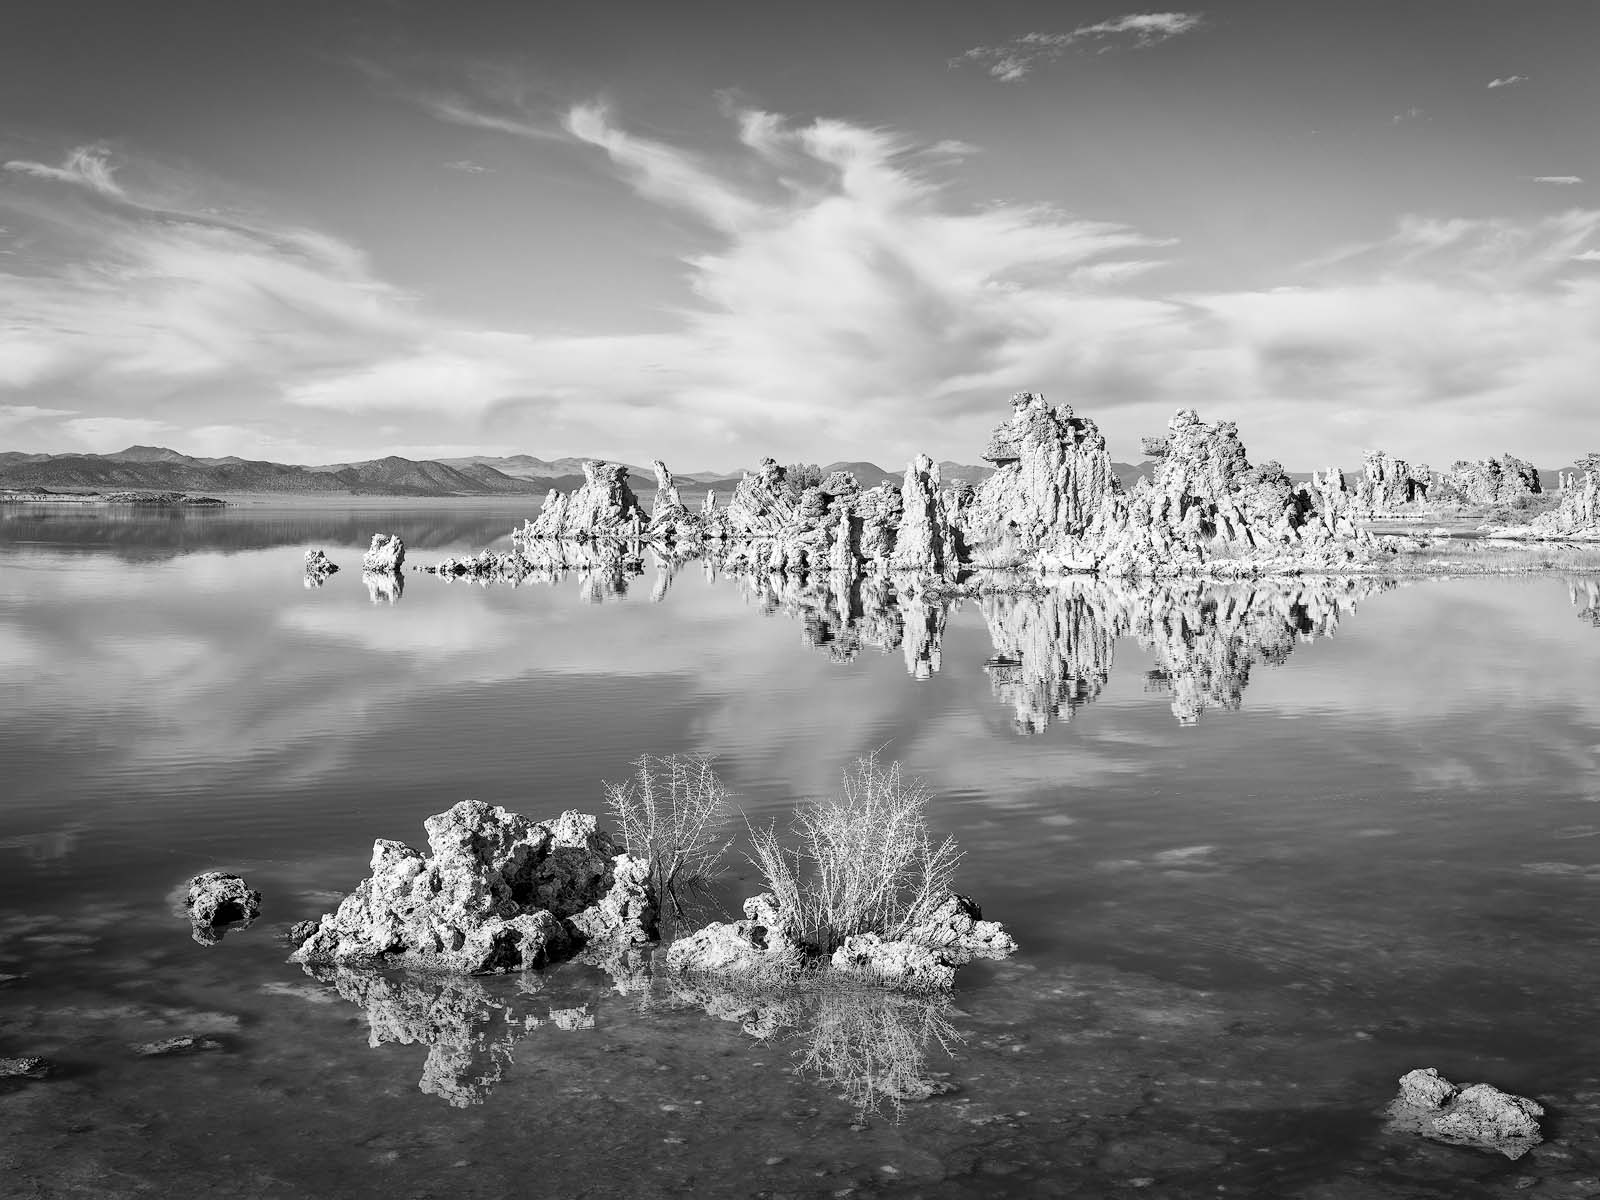 WORLD REGIONS & COUNTRIES, North America, United States of America, California, Mono Lake, Eastern Sierra Mountains, environment, scenery, water, lake, photo